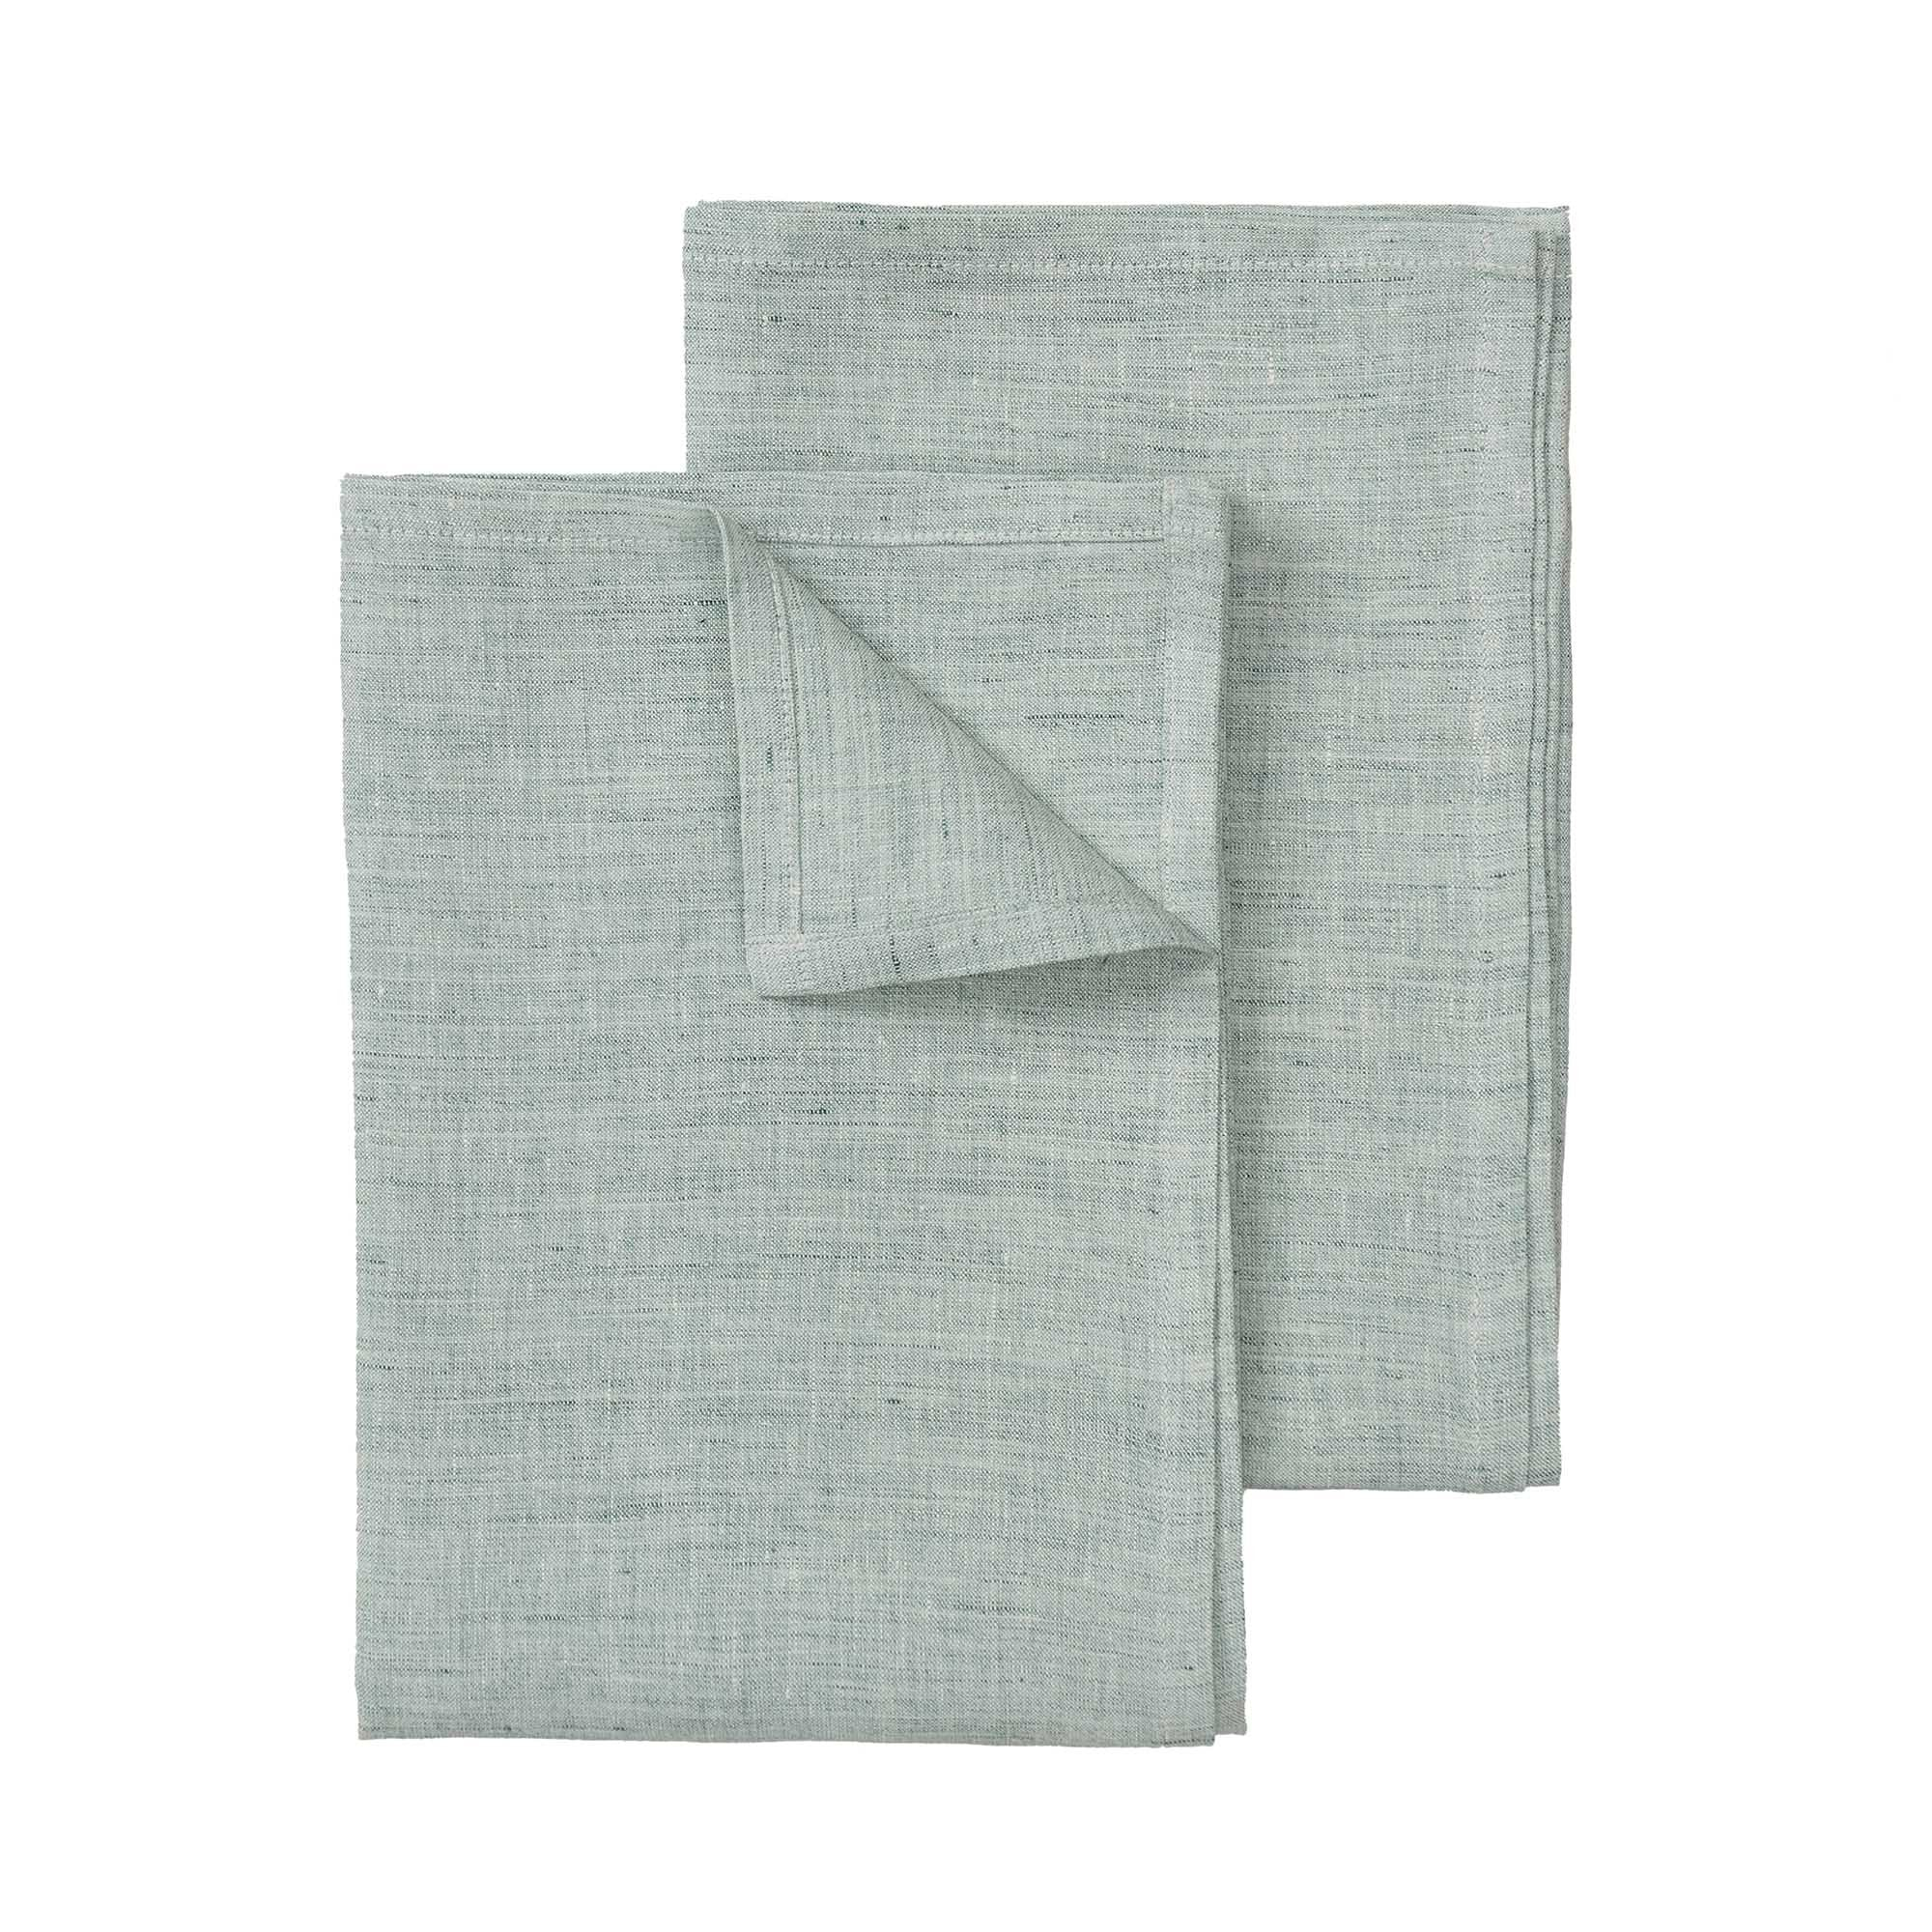 Sameiro Tea Towel green grey, 100% linen